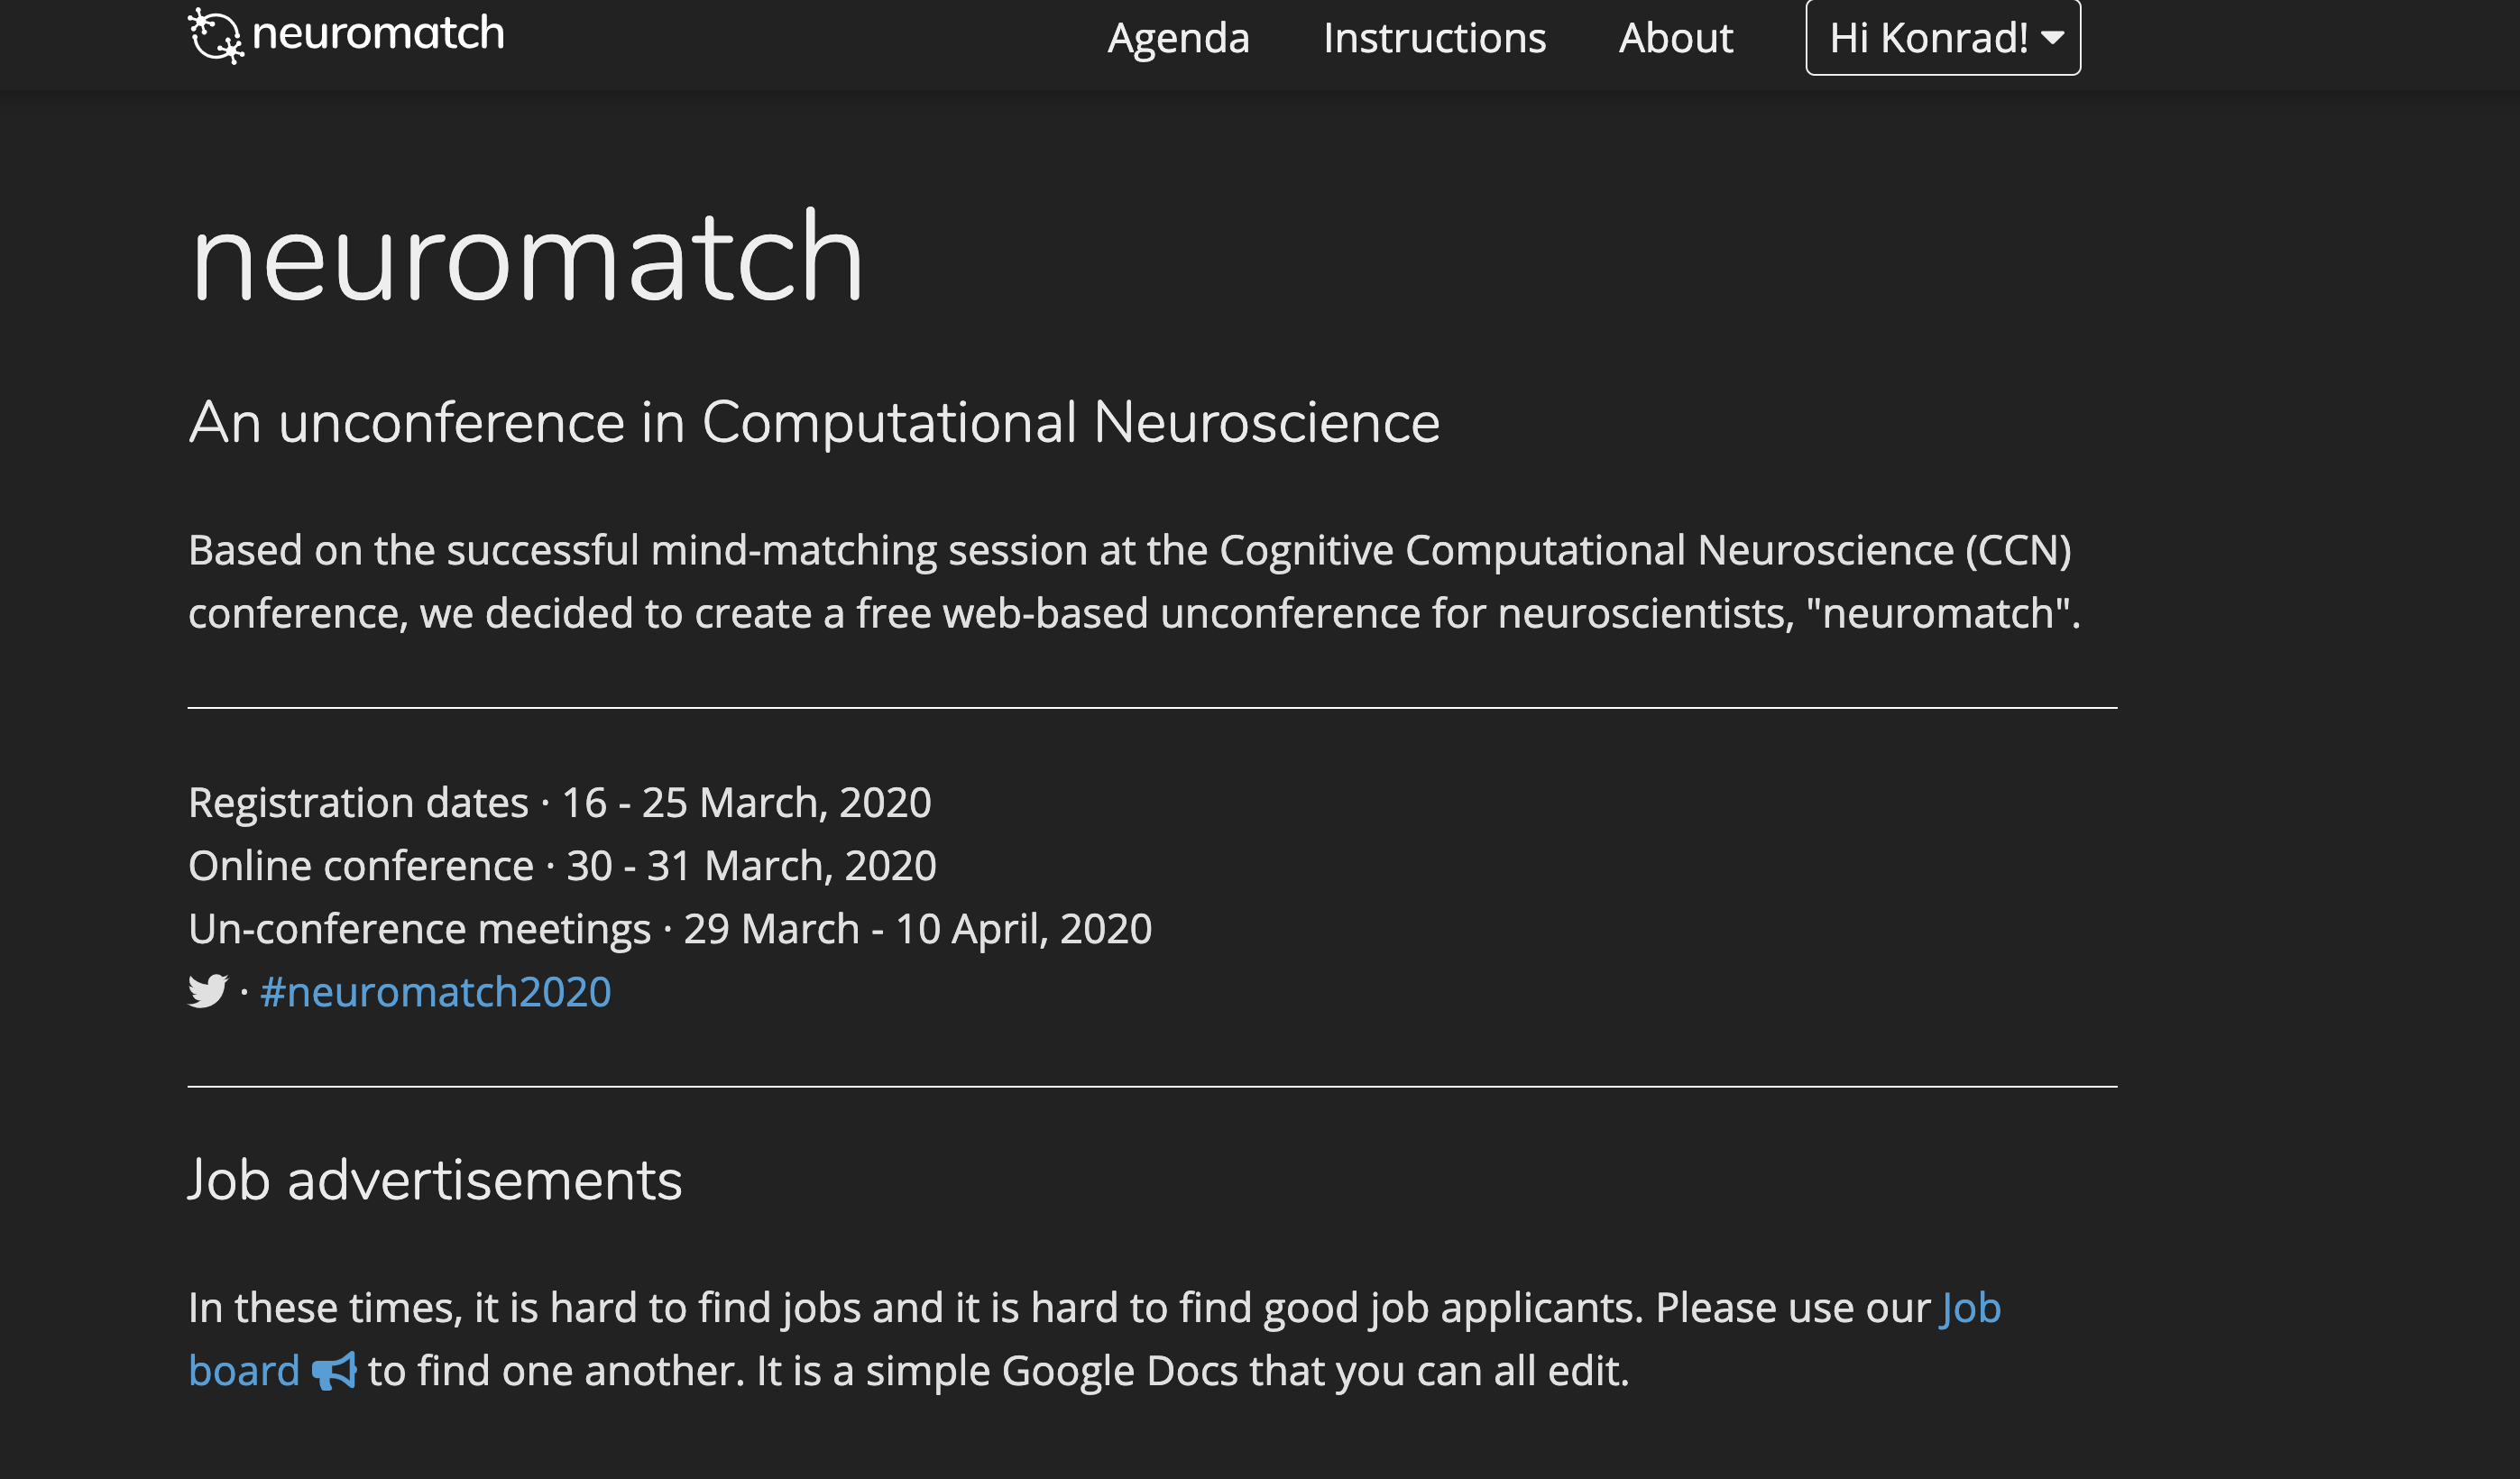 The neuromatch homepage